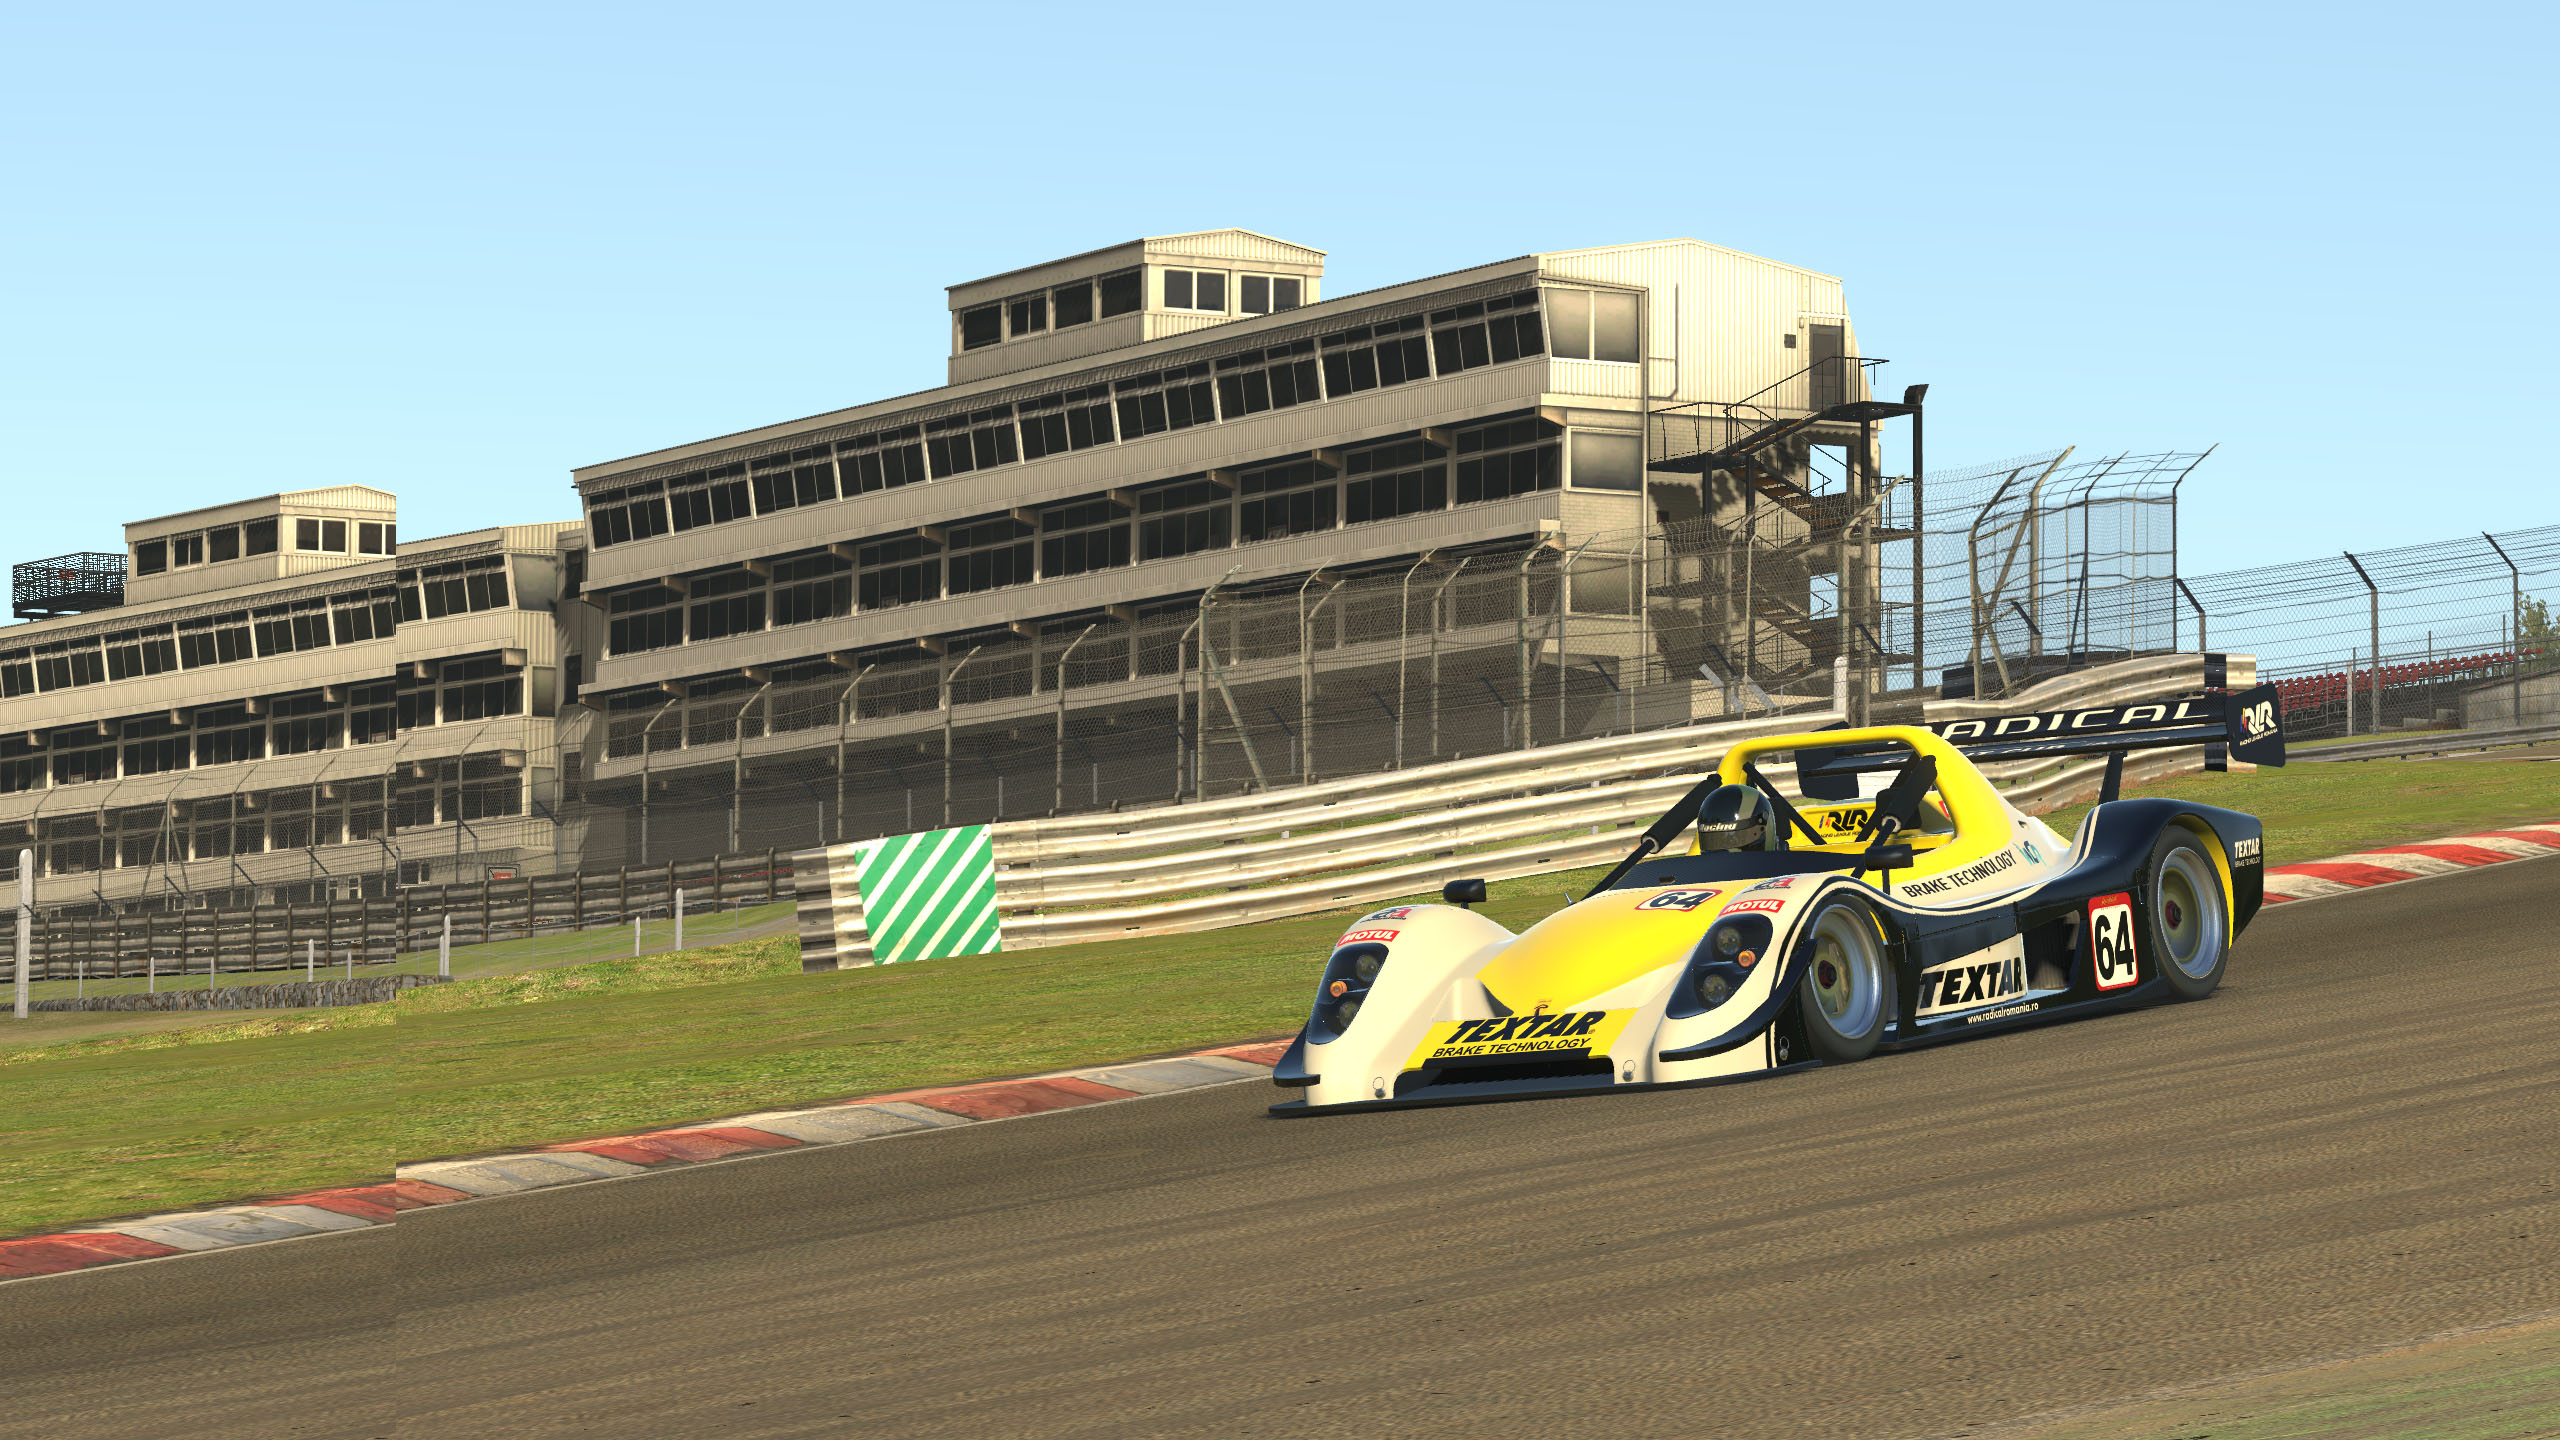 Radical Romania and Racing League Romania team up to launch the RLR Radical Sprint Cup digital series in iRacing